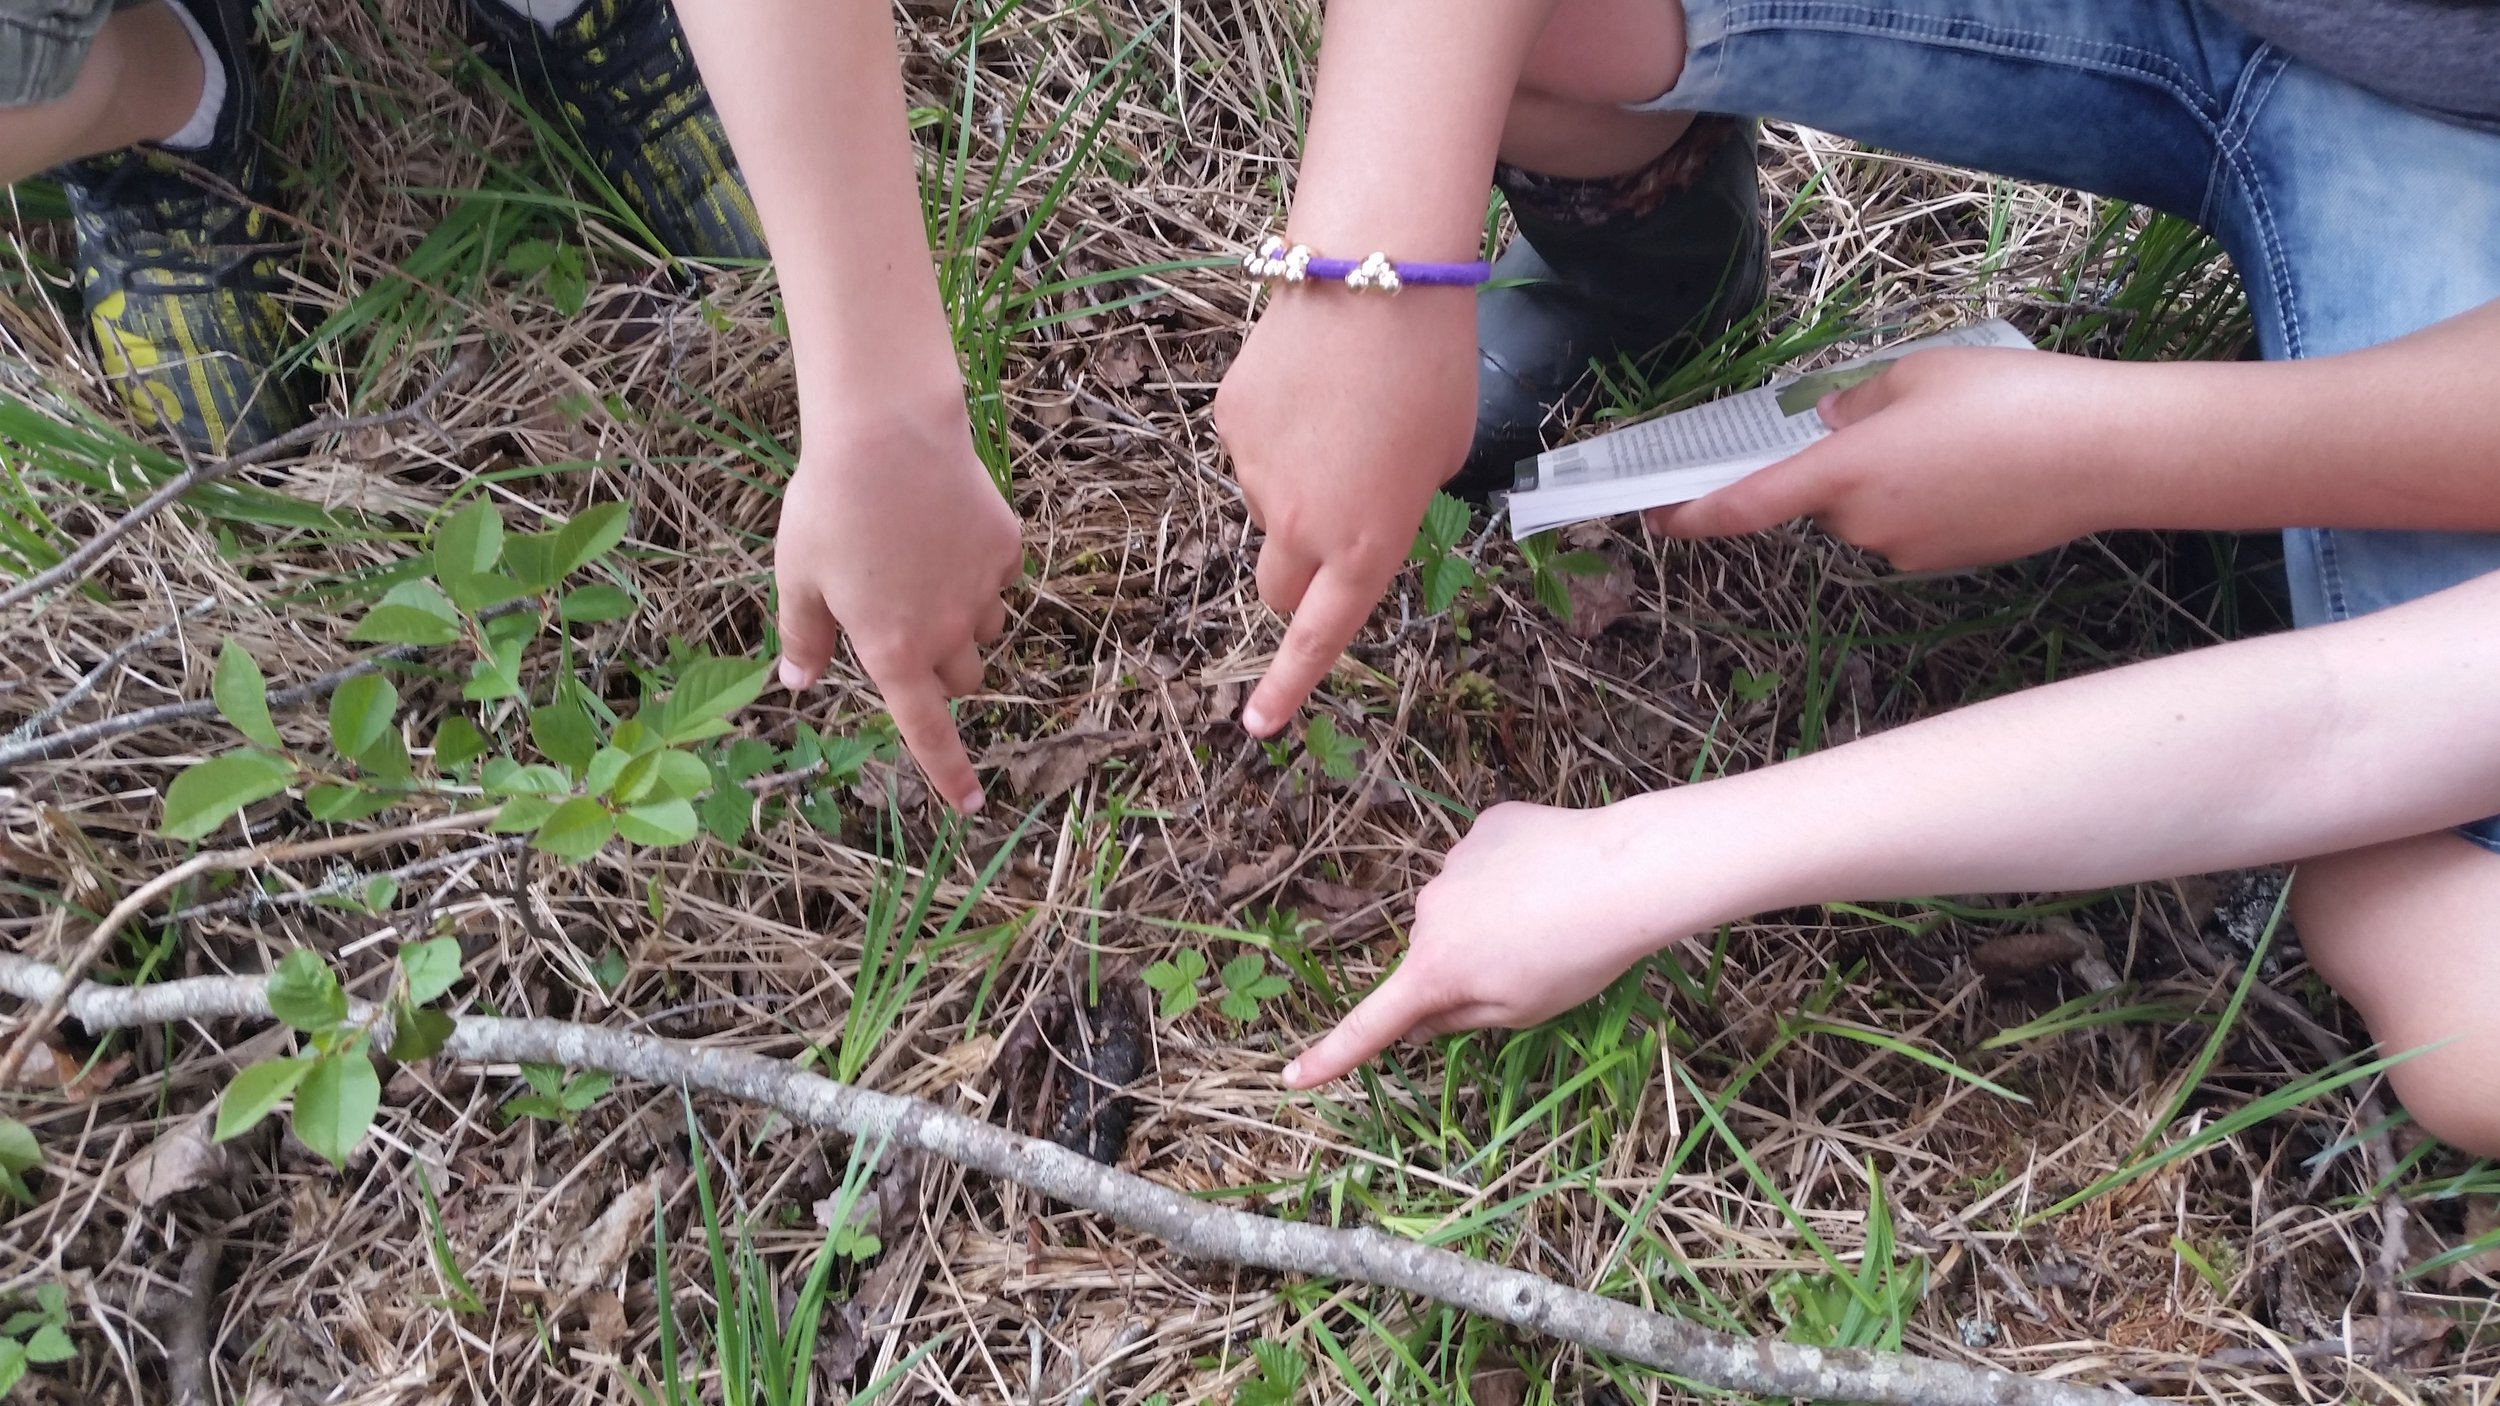 They found some scat (but don't worry, they didn't touch it with their hands)!